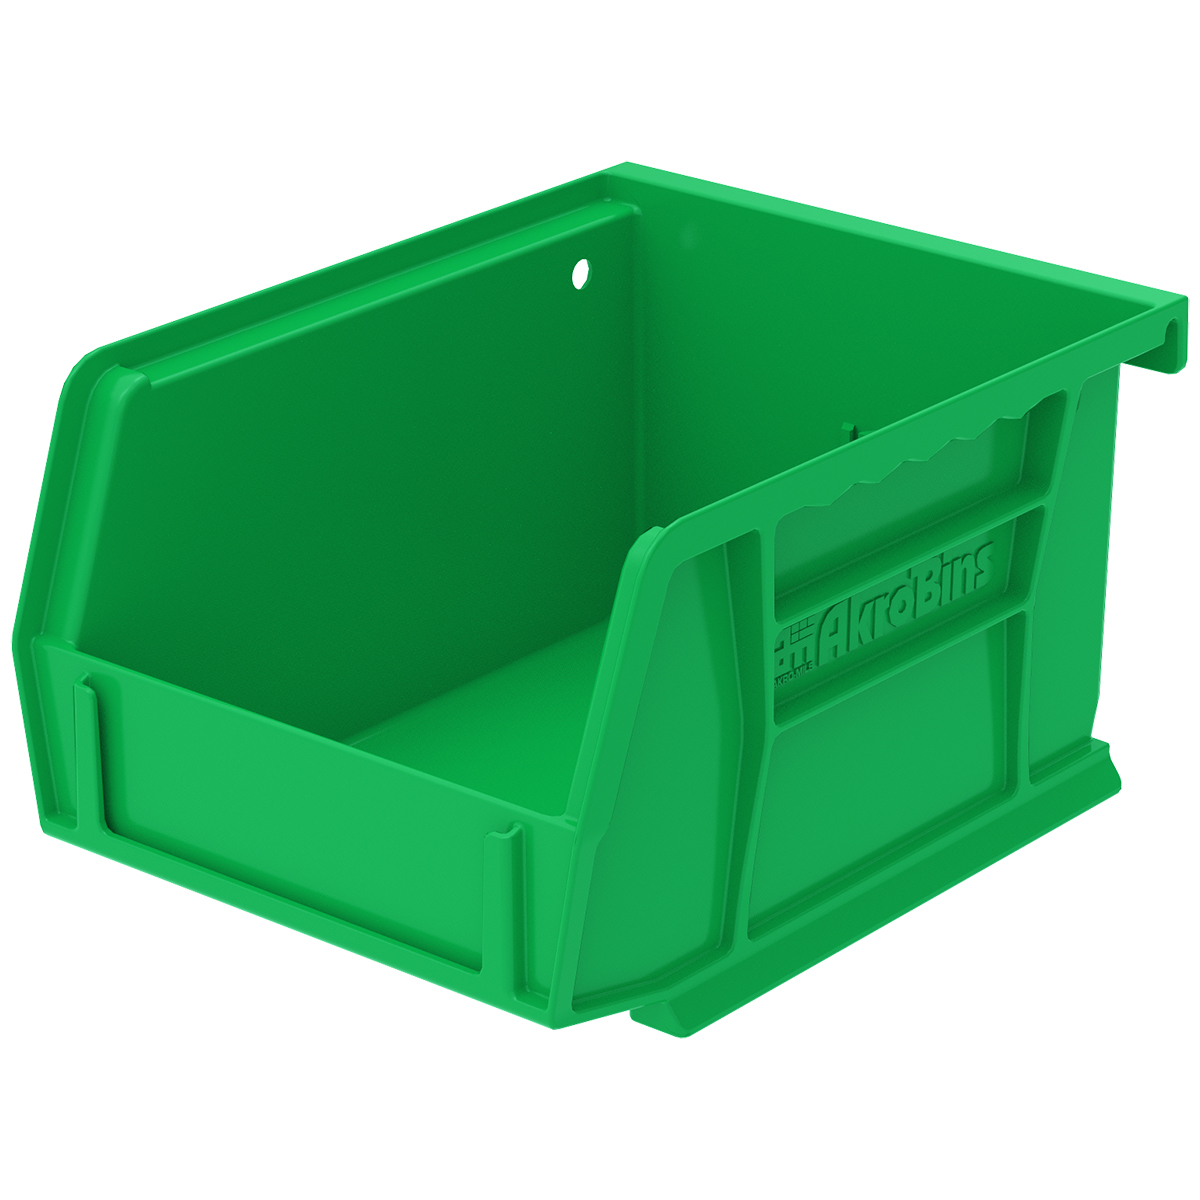 AkroBin 5-3/8 x 4-1/8 x 3, Green (30210GREEN).  This item sold in carton quantities of 24.